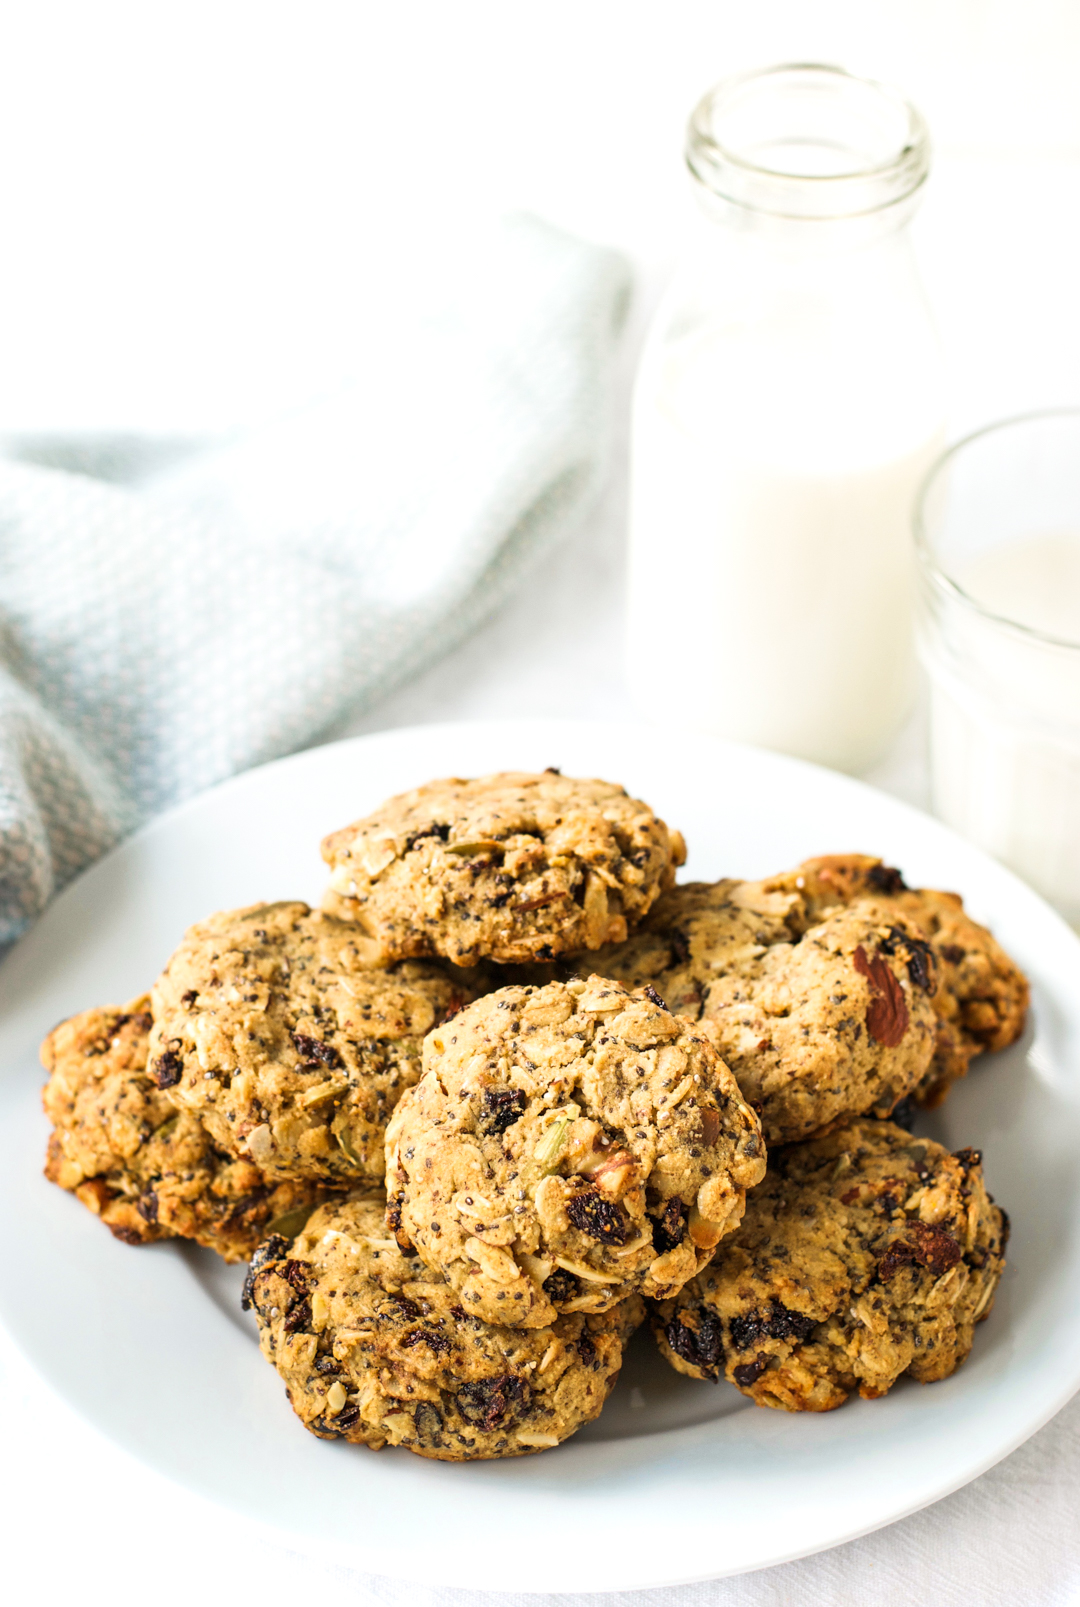 Cherry almond breakfast cookies